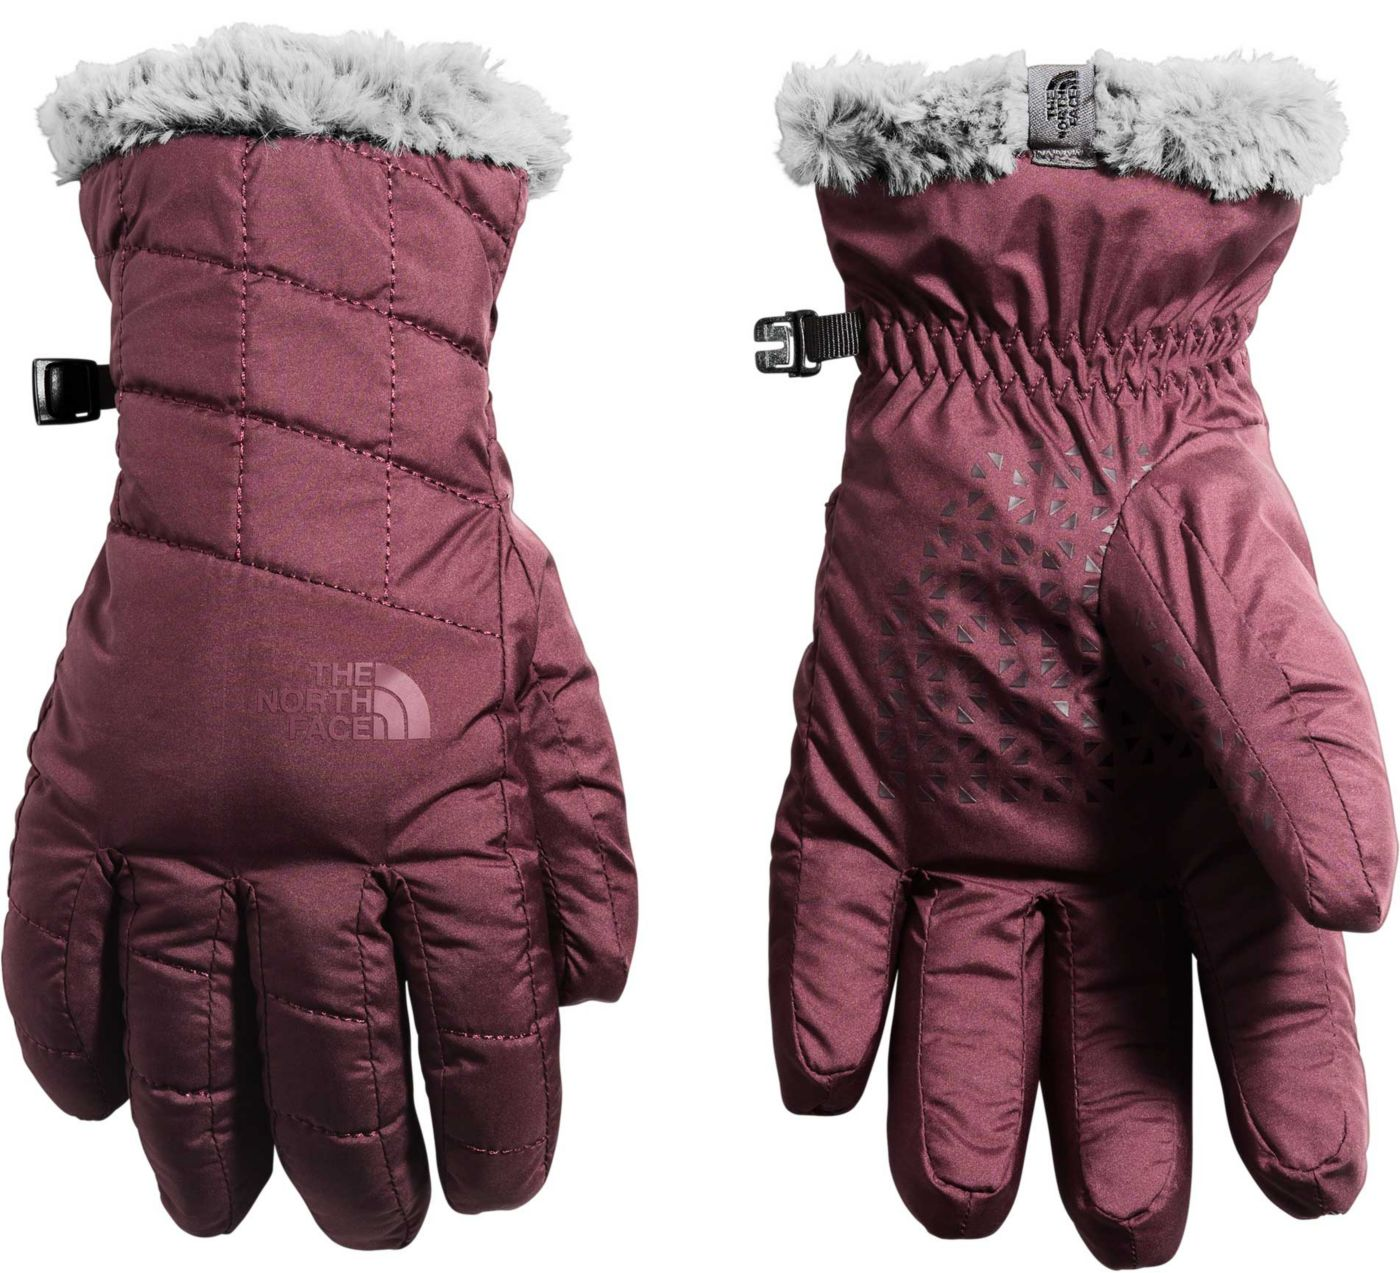 The North Face Women's Mossbud Swirl Gloves